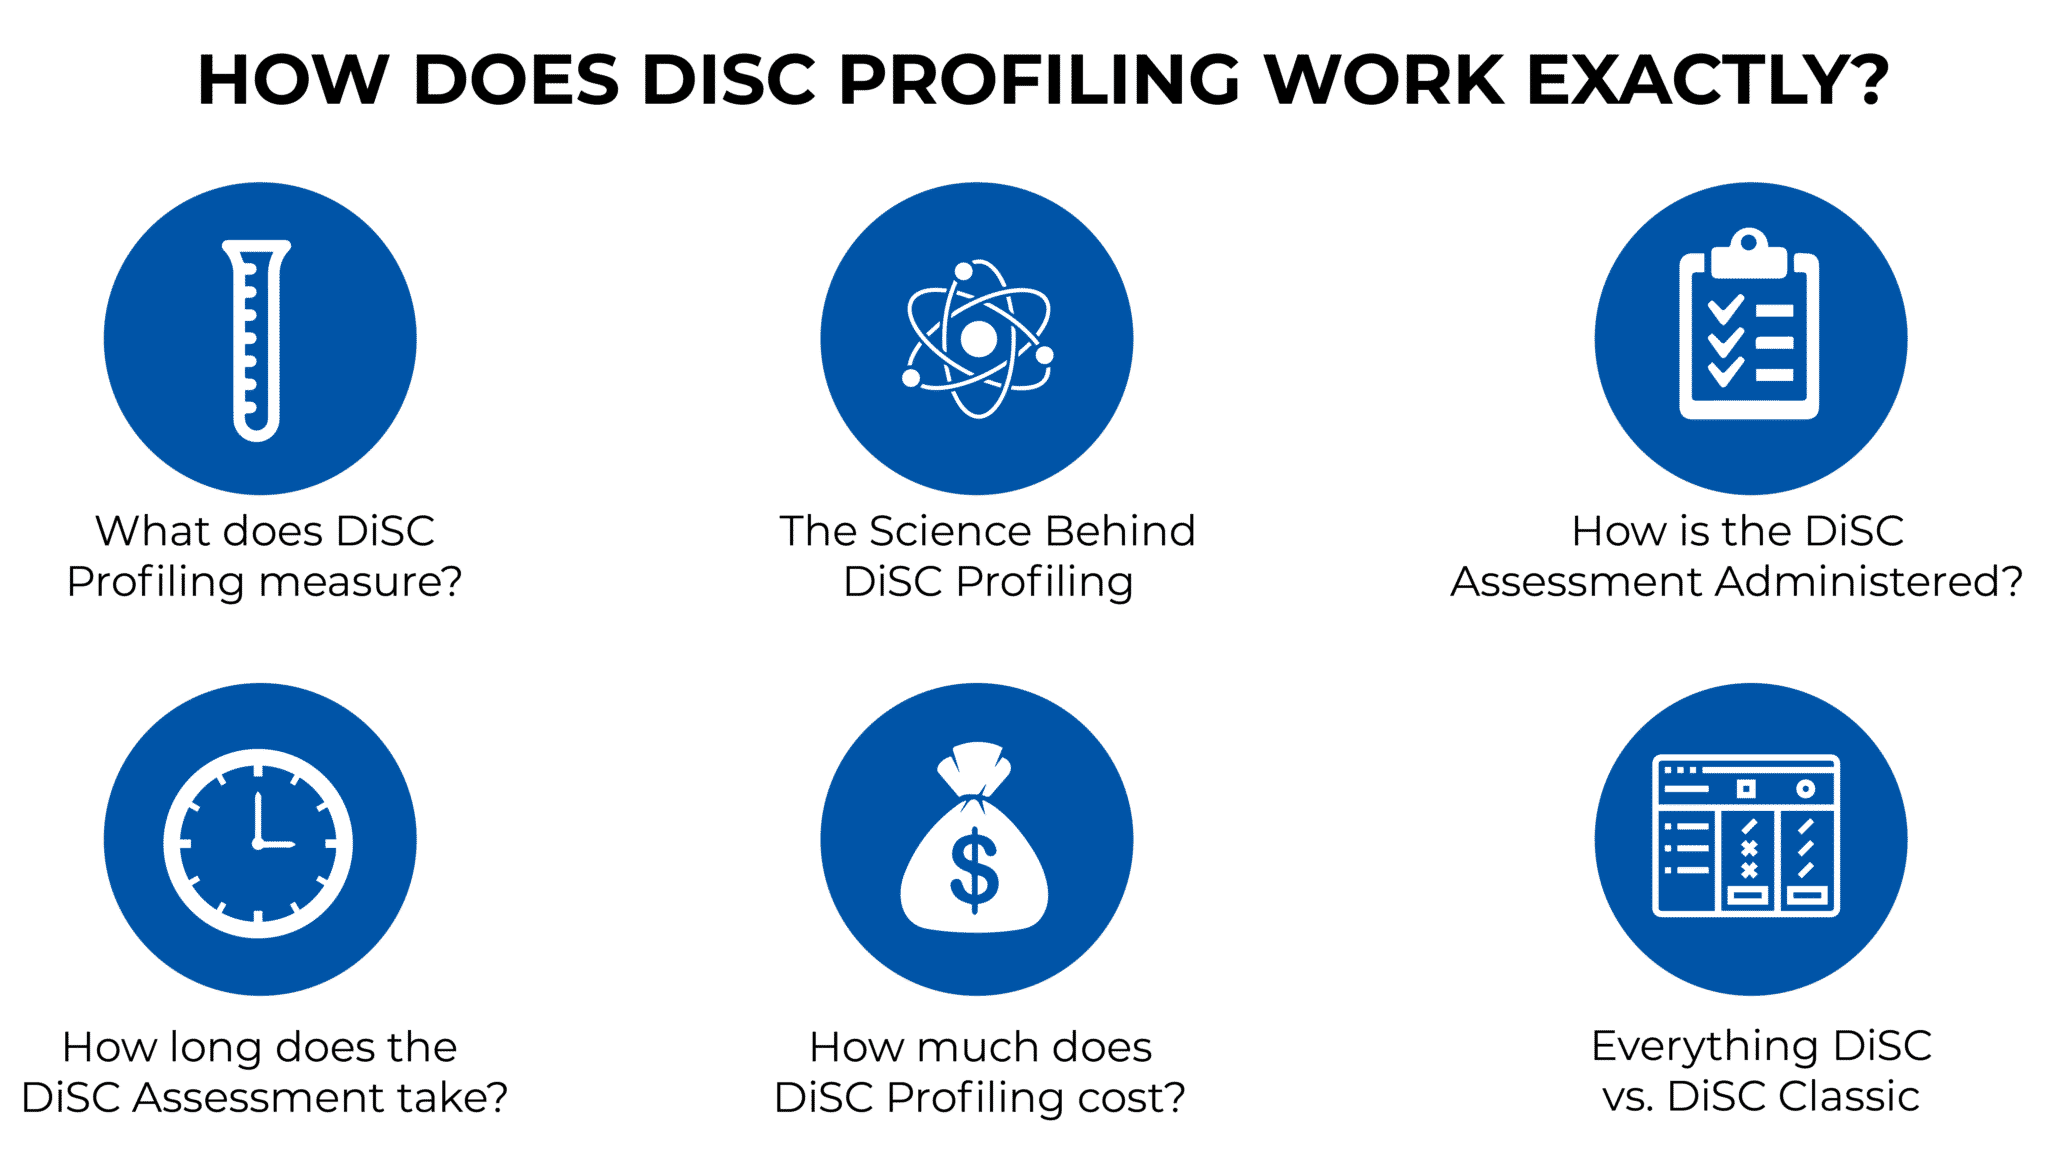 HOW DOES DISC PROFILING WORK